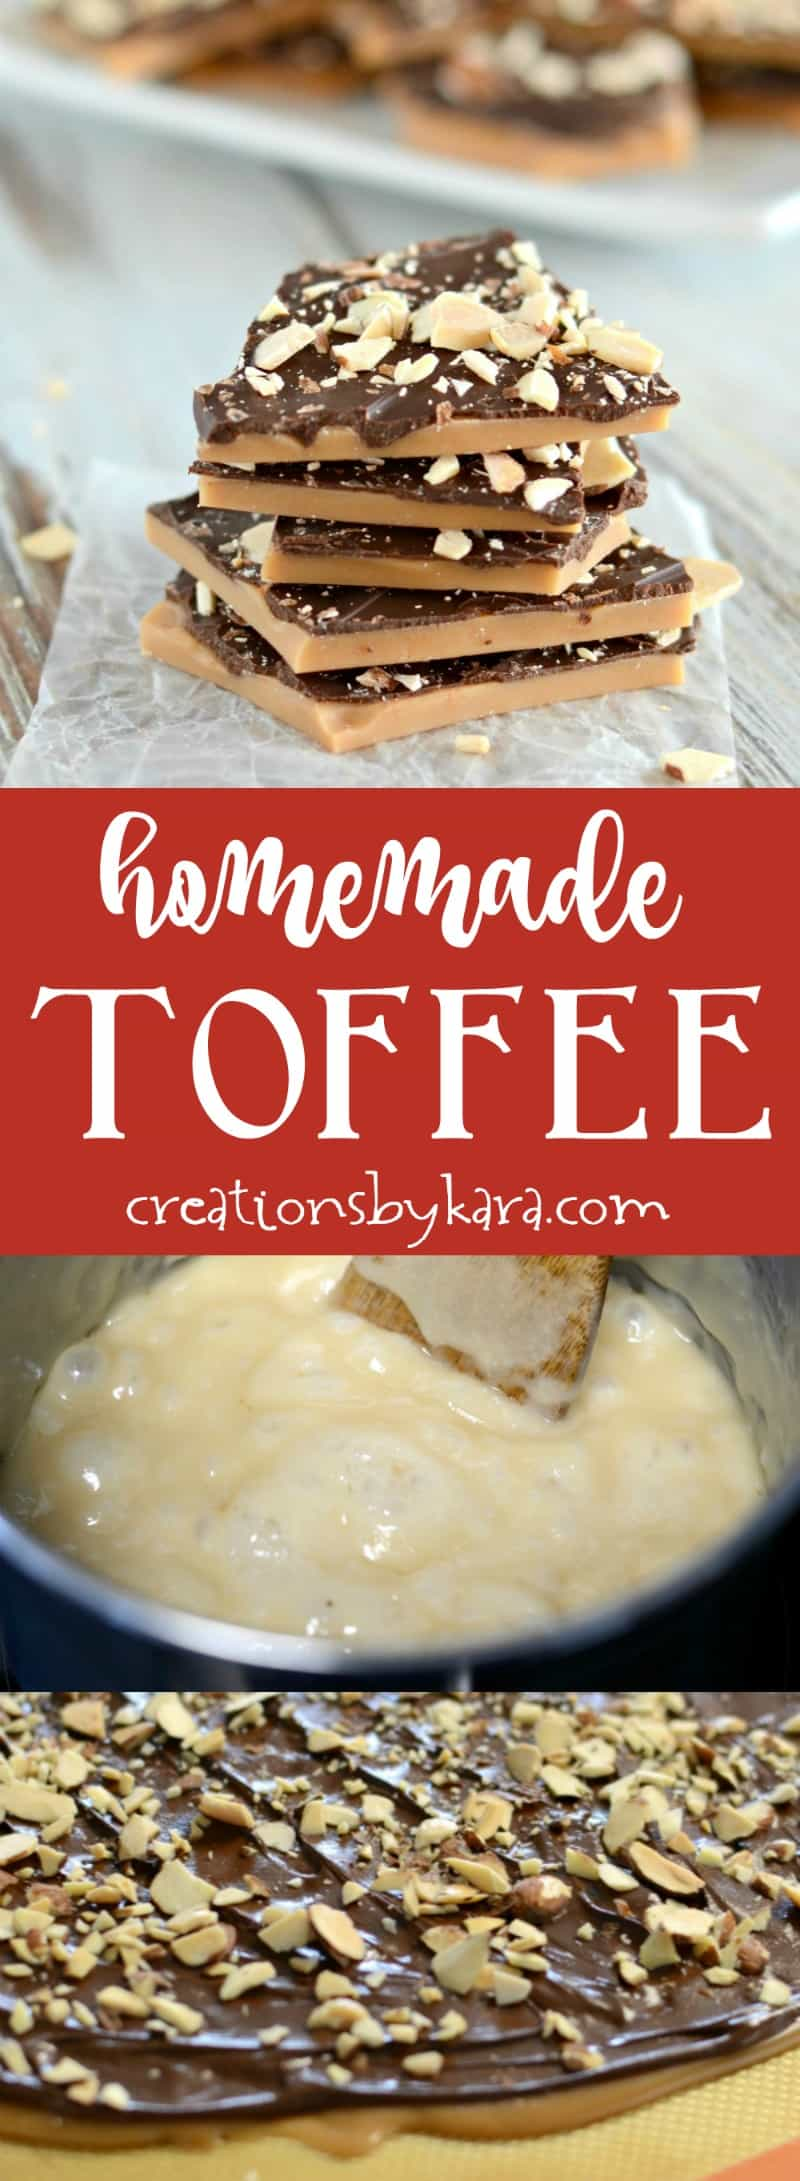 The best English Toffee recipe- so easy and so scrumptious! Everyone raves over this toffee!